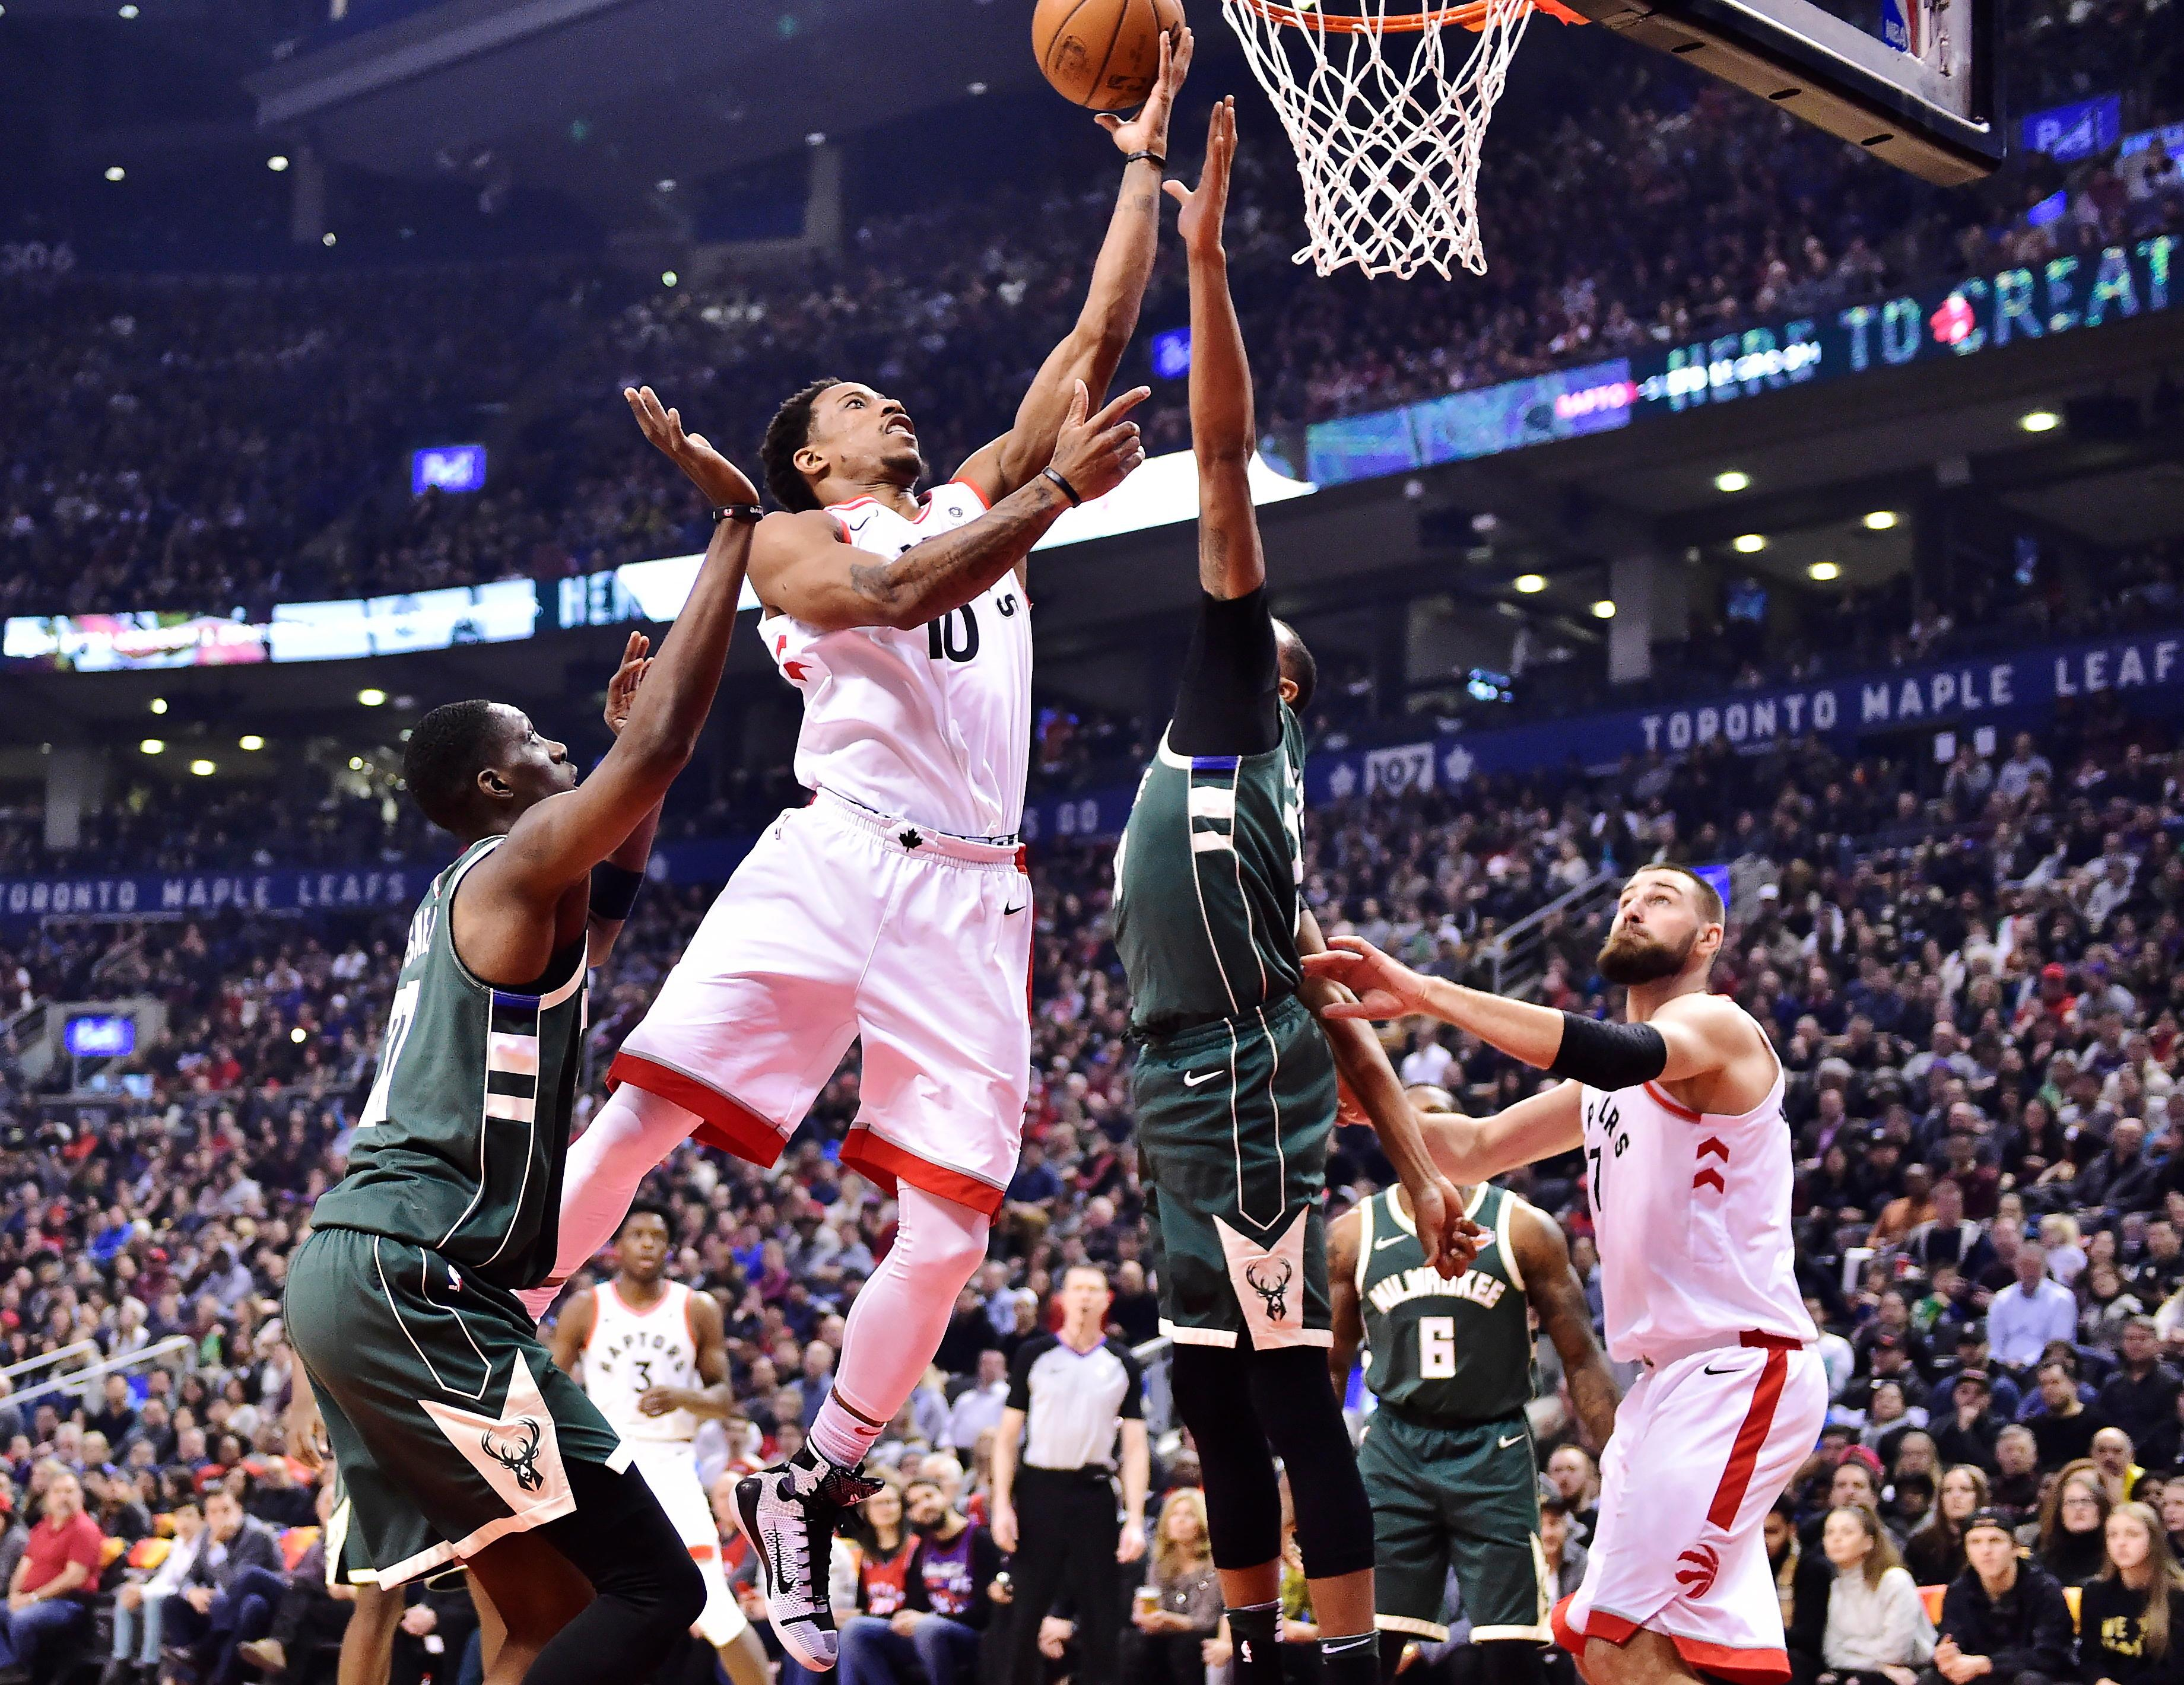 Toronto Raptors guard DeMar DeRozan (10) shoots over Milwaukee Bucks forward John Henson (31) as Bucks guard Tony Snell, left, looks on during first half action in Toronto on Monday, Jan. 1, 2018. (Frank Gunn/The Canadian Press via AP)